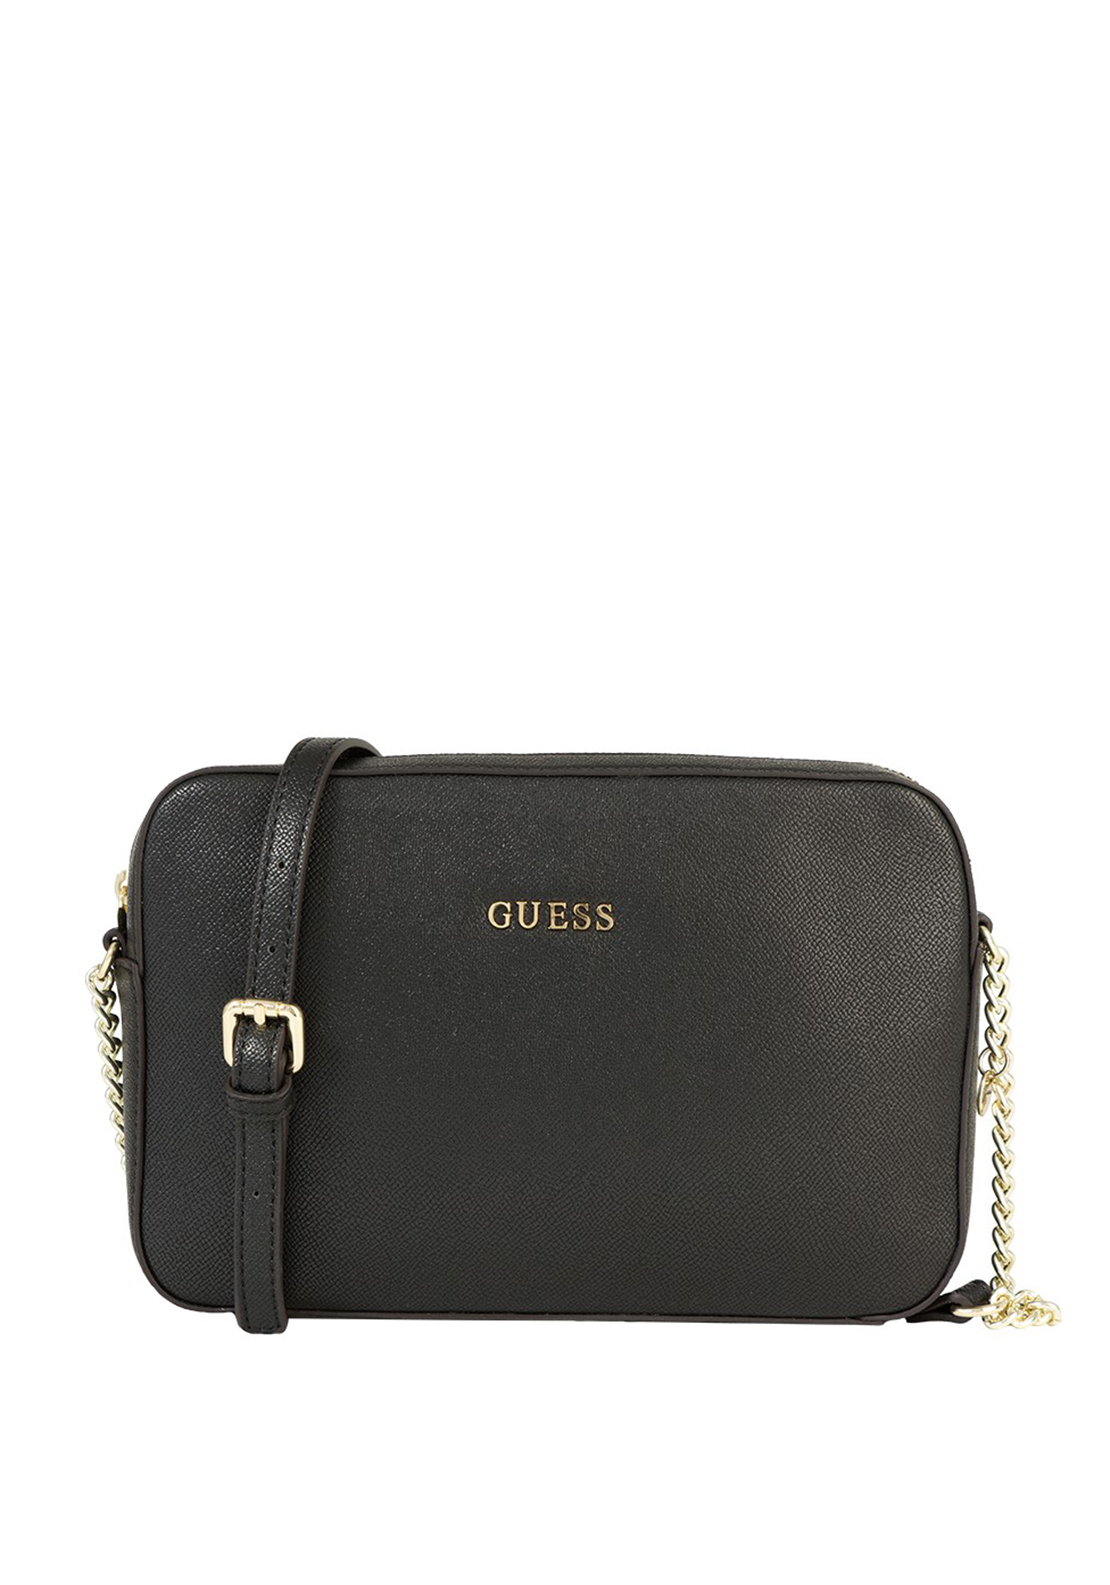 Guess Isabeau Cross Body Bag, Black